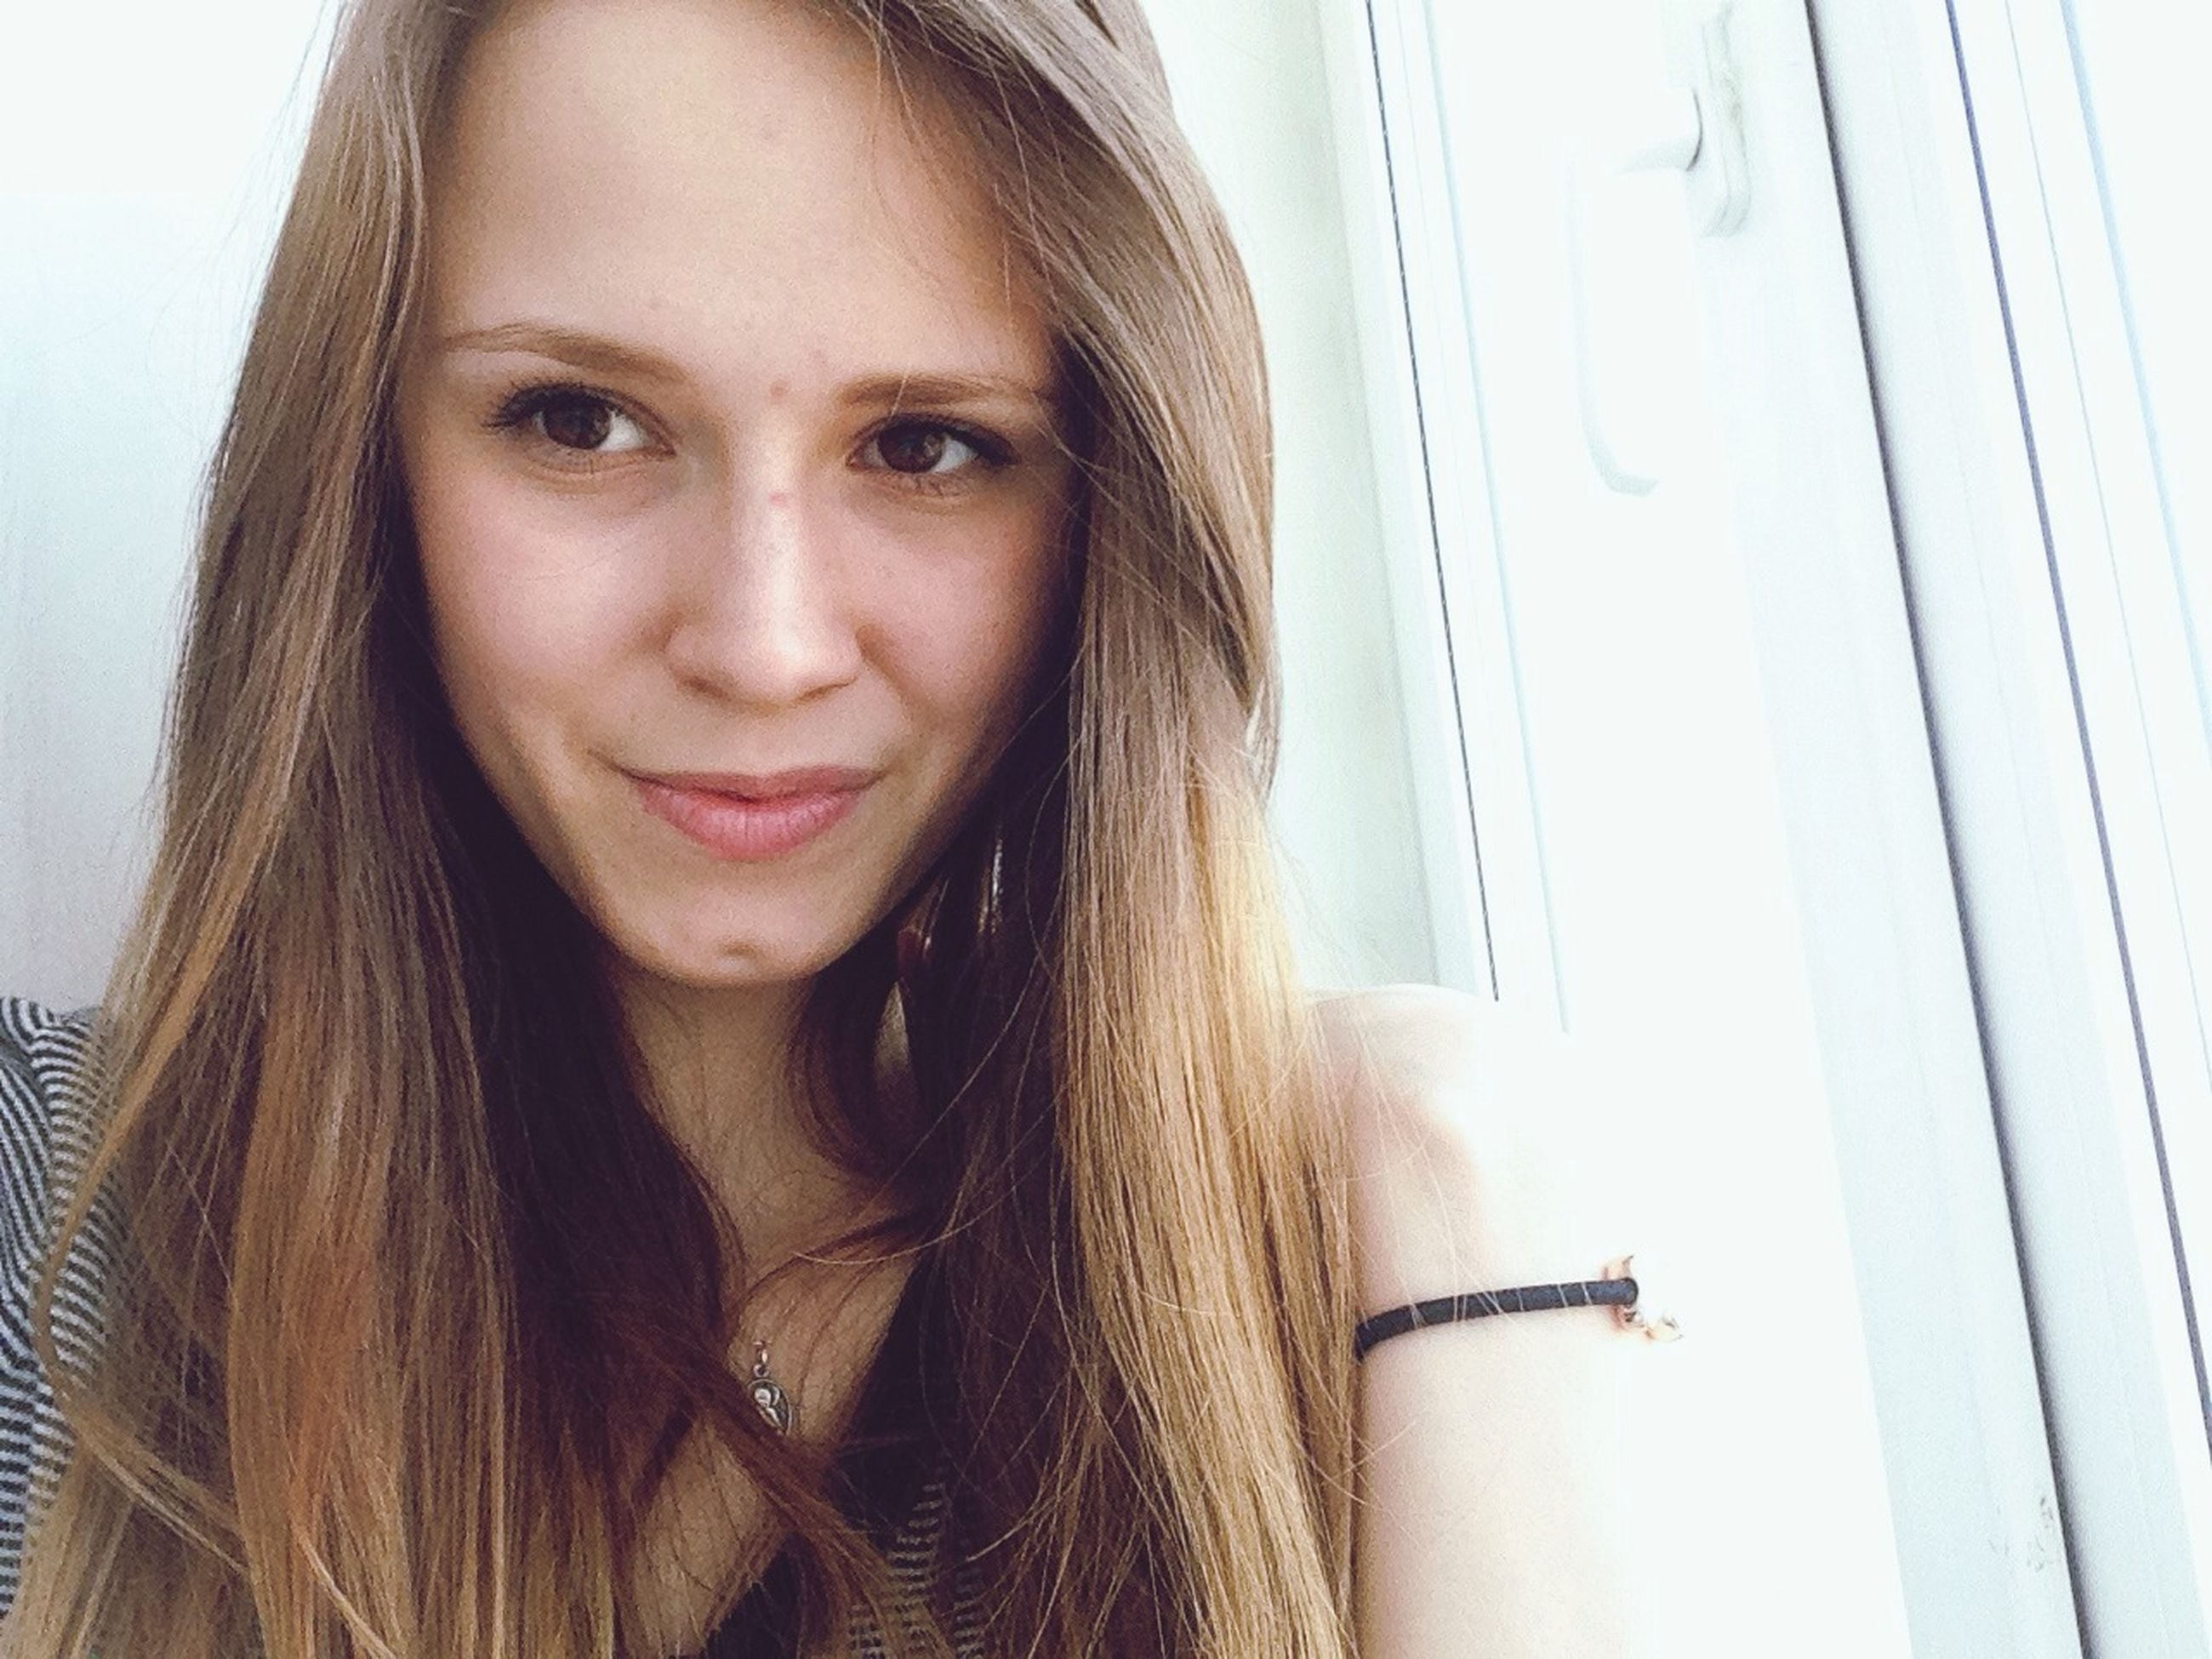 young women, young adult, long hair, person, lifestyles, looking at camera, portrait, indoors, front view, headshot, leisure activity, smiling, beauty, brown hair, black hair, femininity, casual clothing